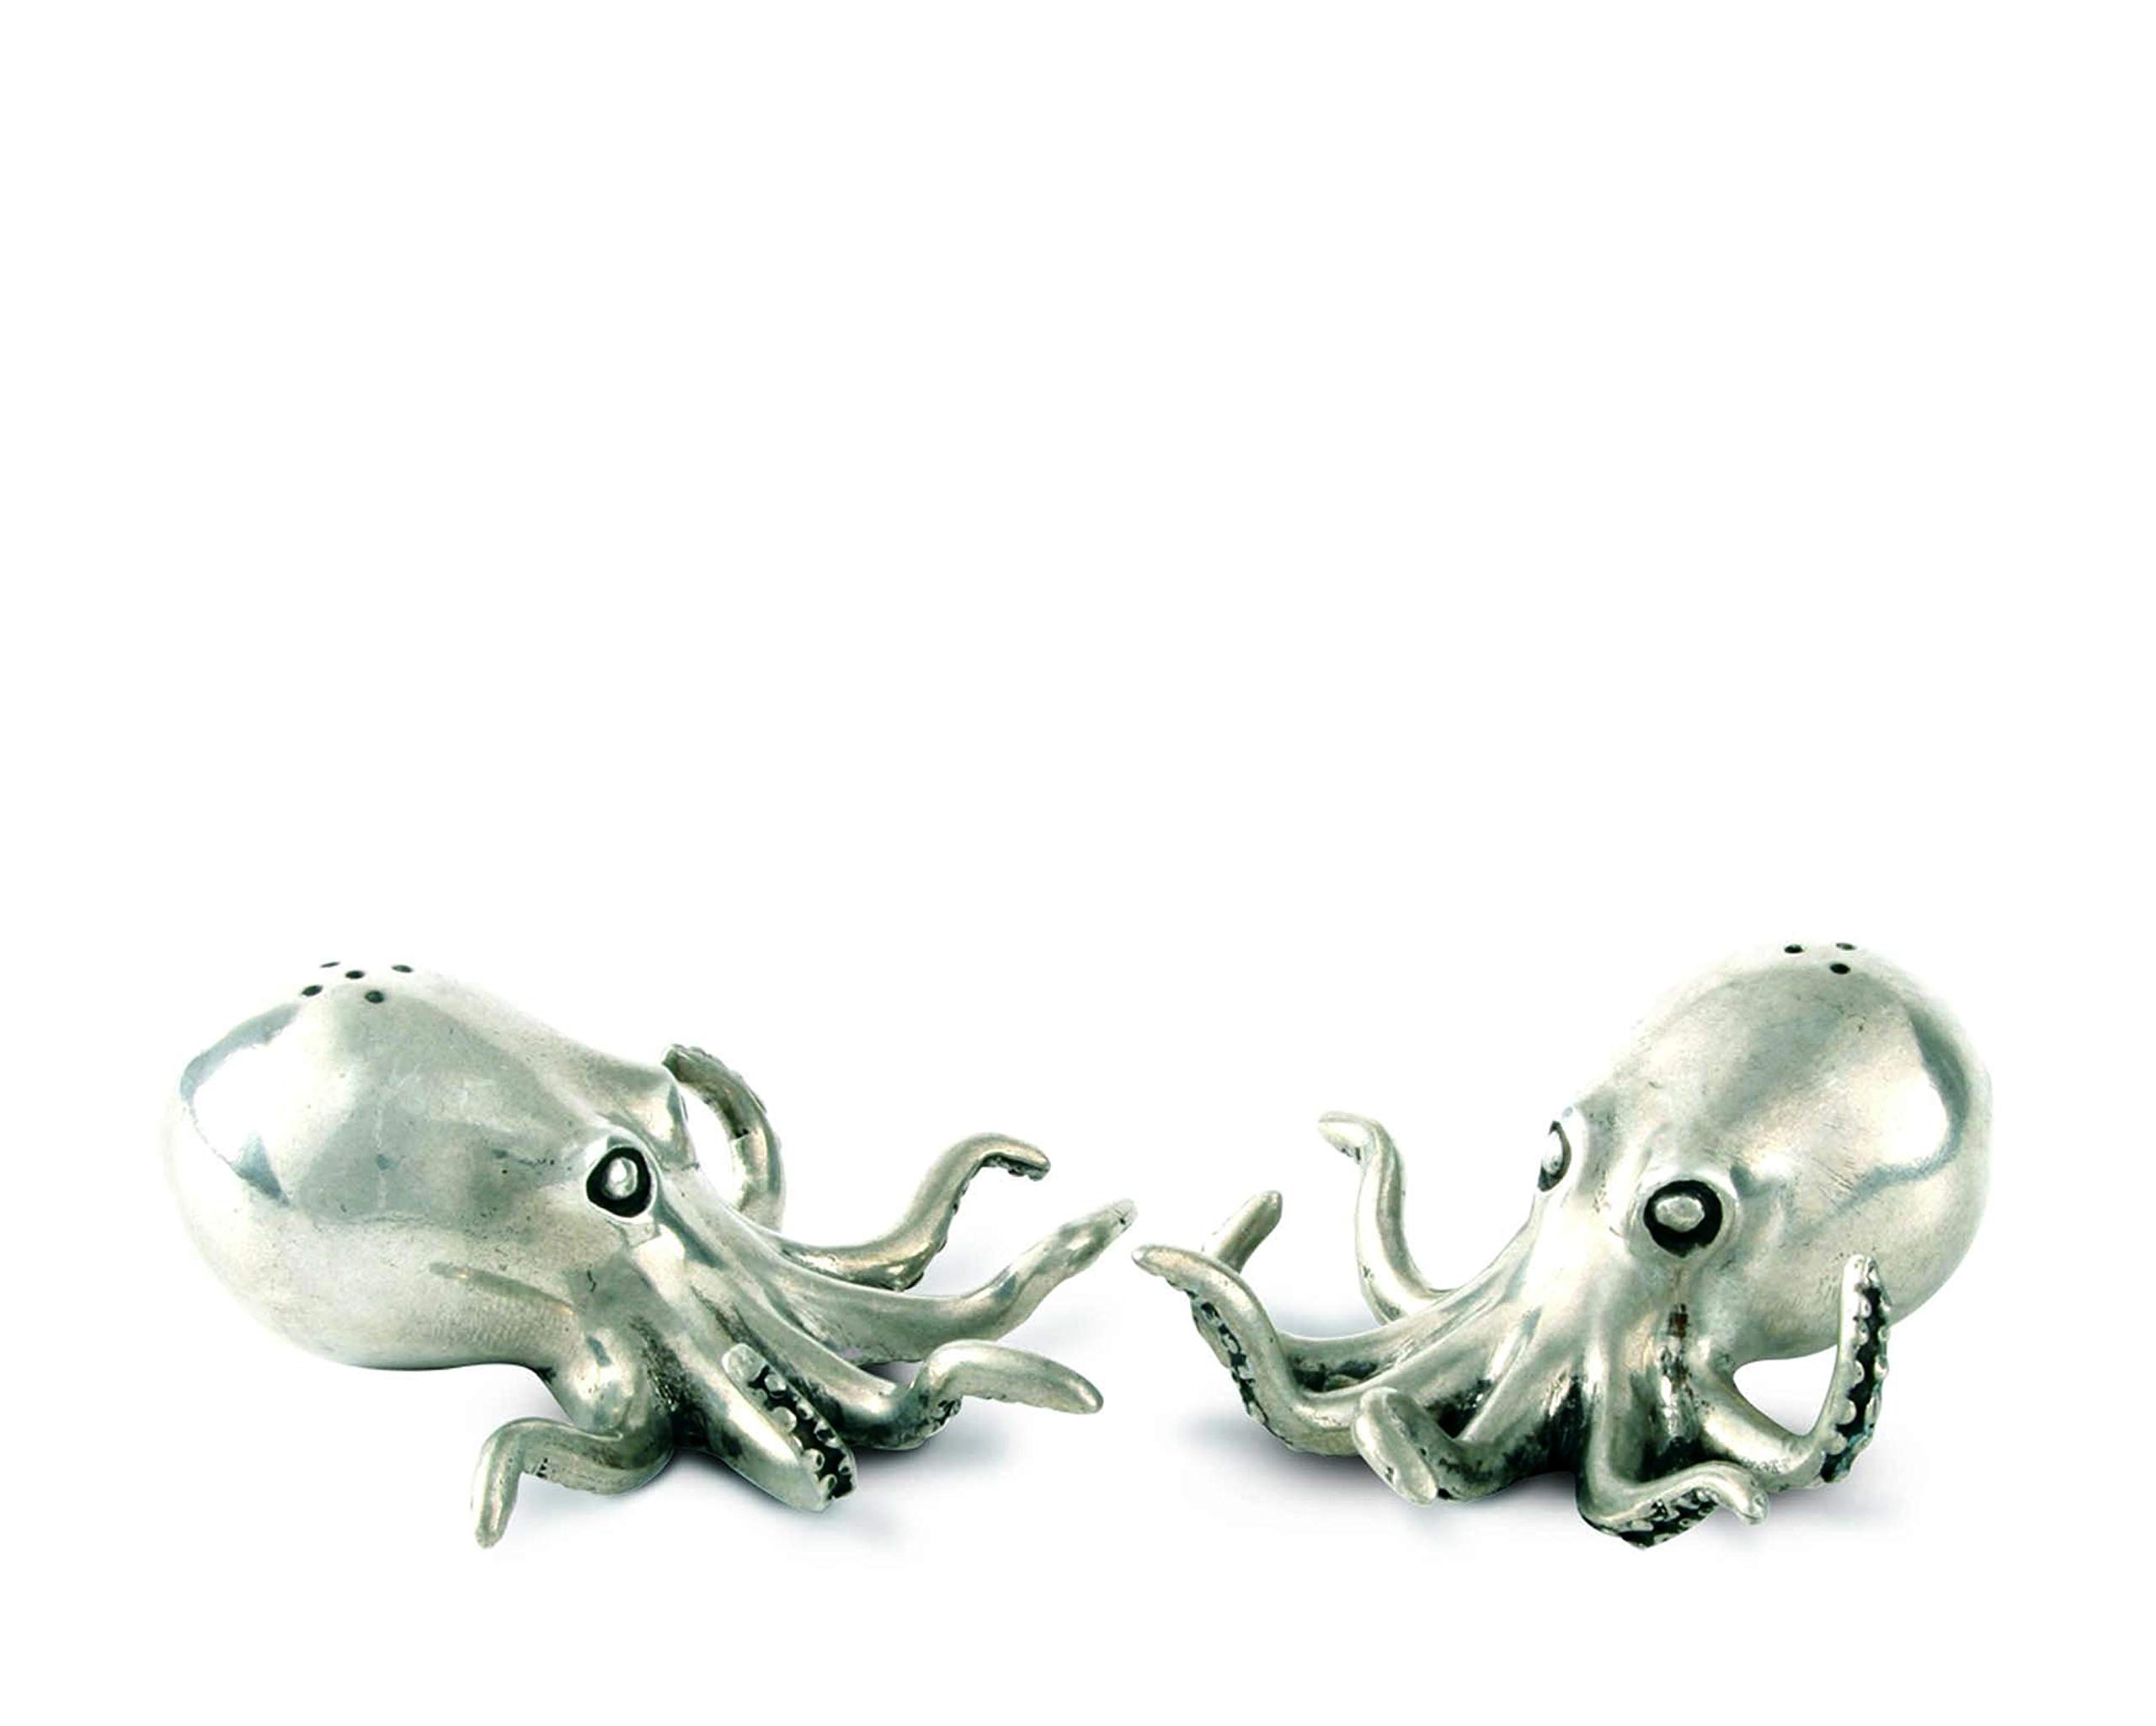 Vagabond House Pewter Octopus Salt and Pepper Shaker Set 3''Long x 1.5'' Tall by Vagabond House